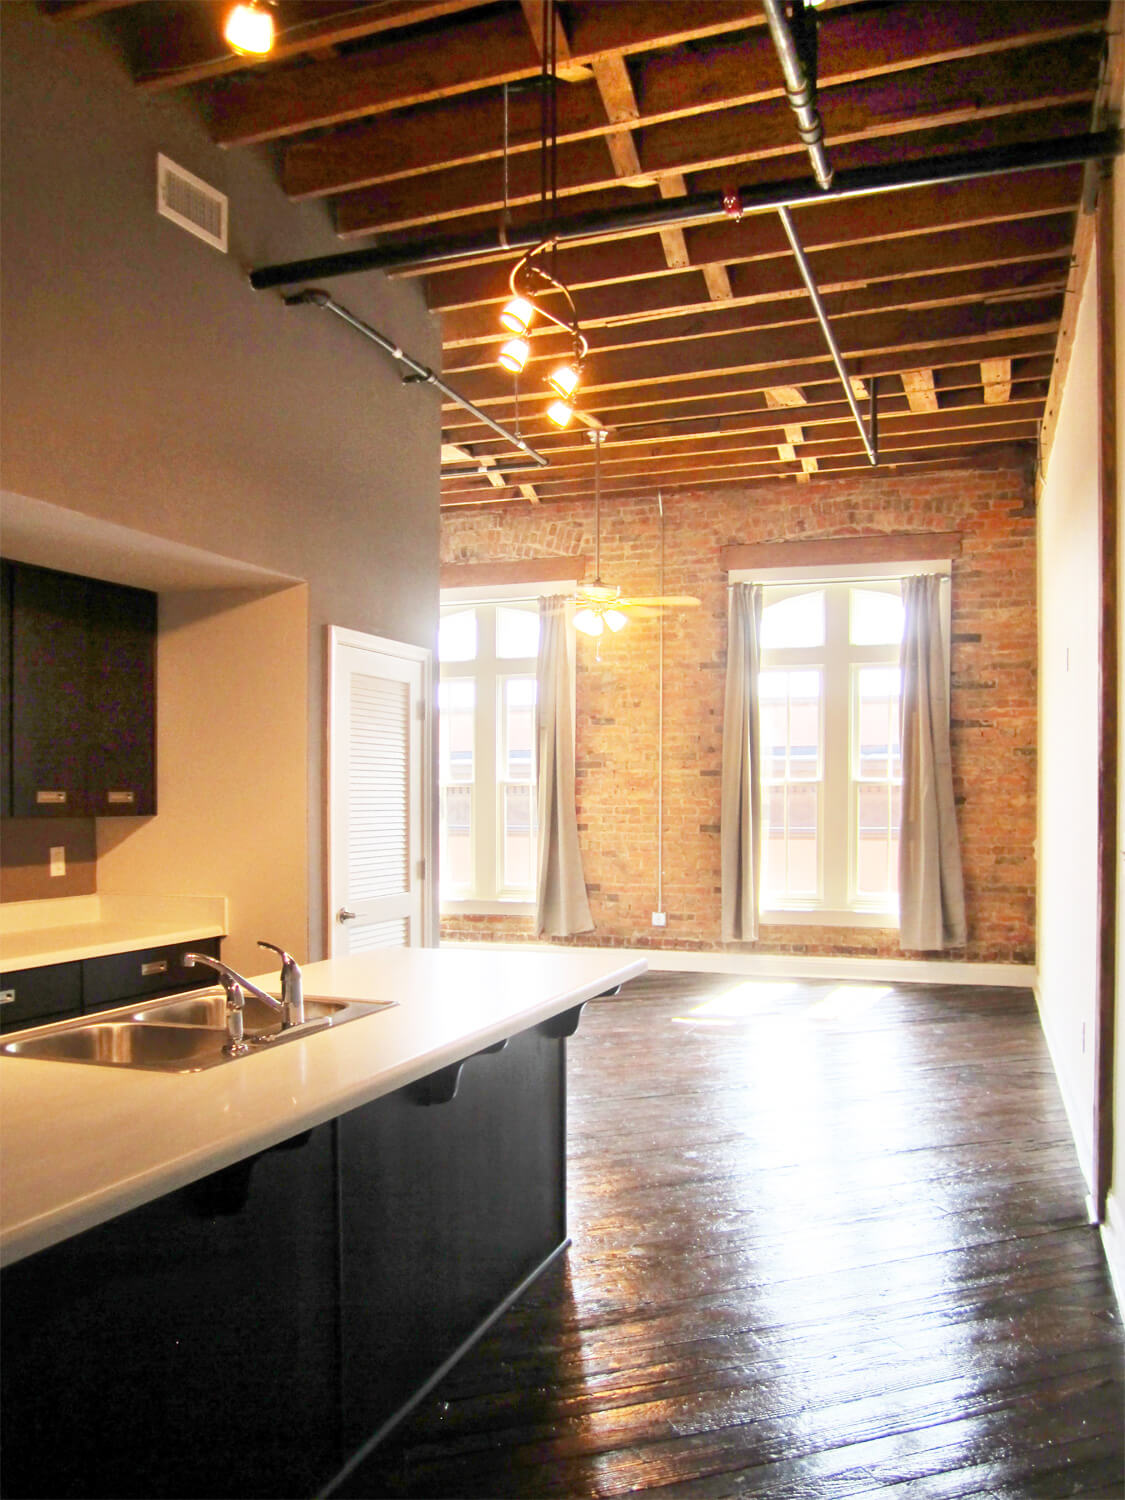 Printing Press Lofts Designed by Foshee Architecture - Interior View of Apartment with an Exposed Wood Ceiling